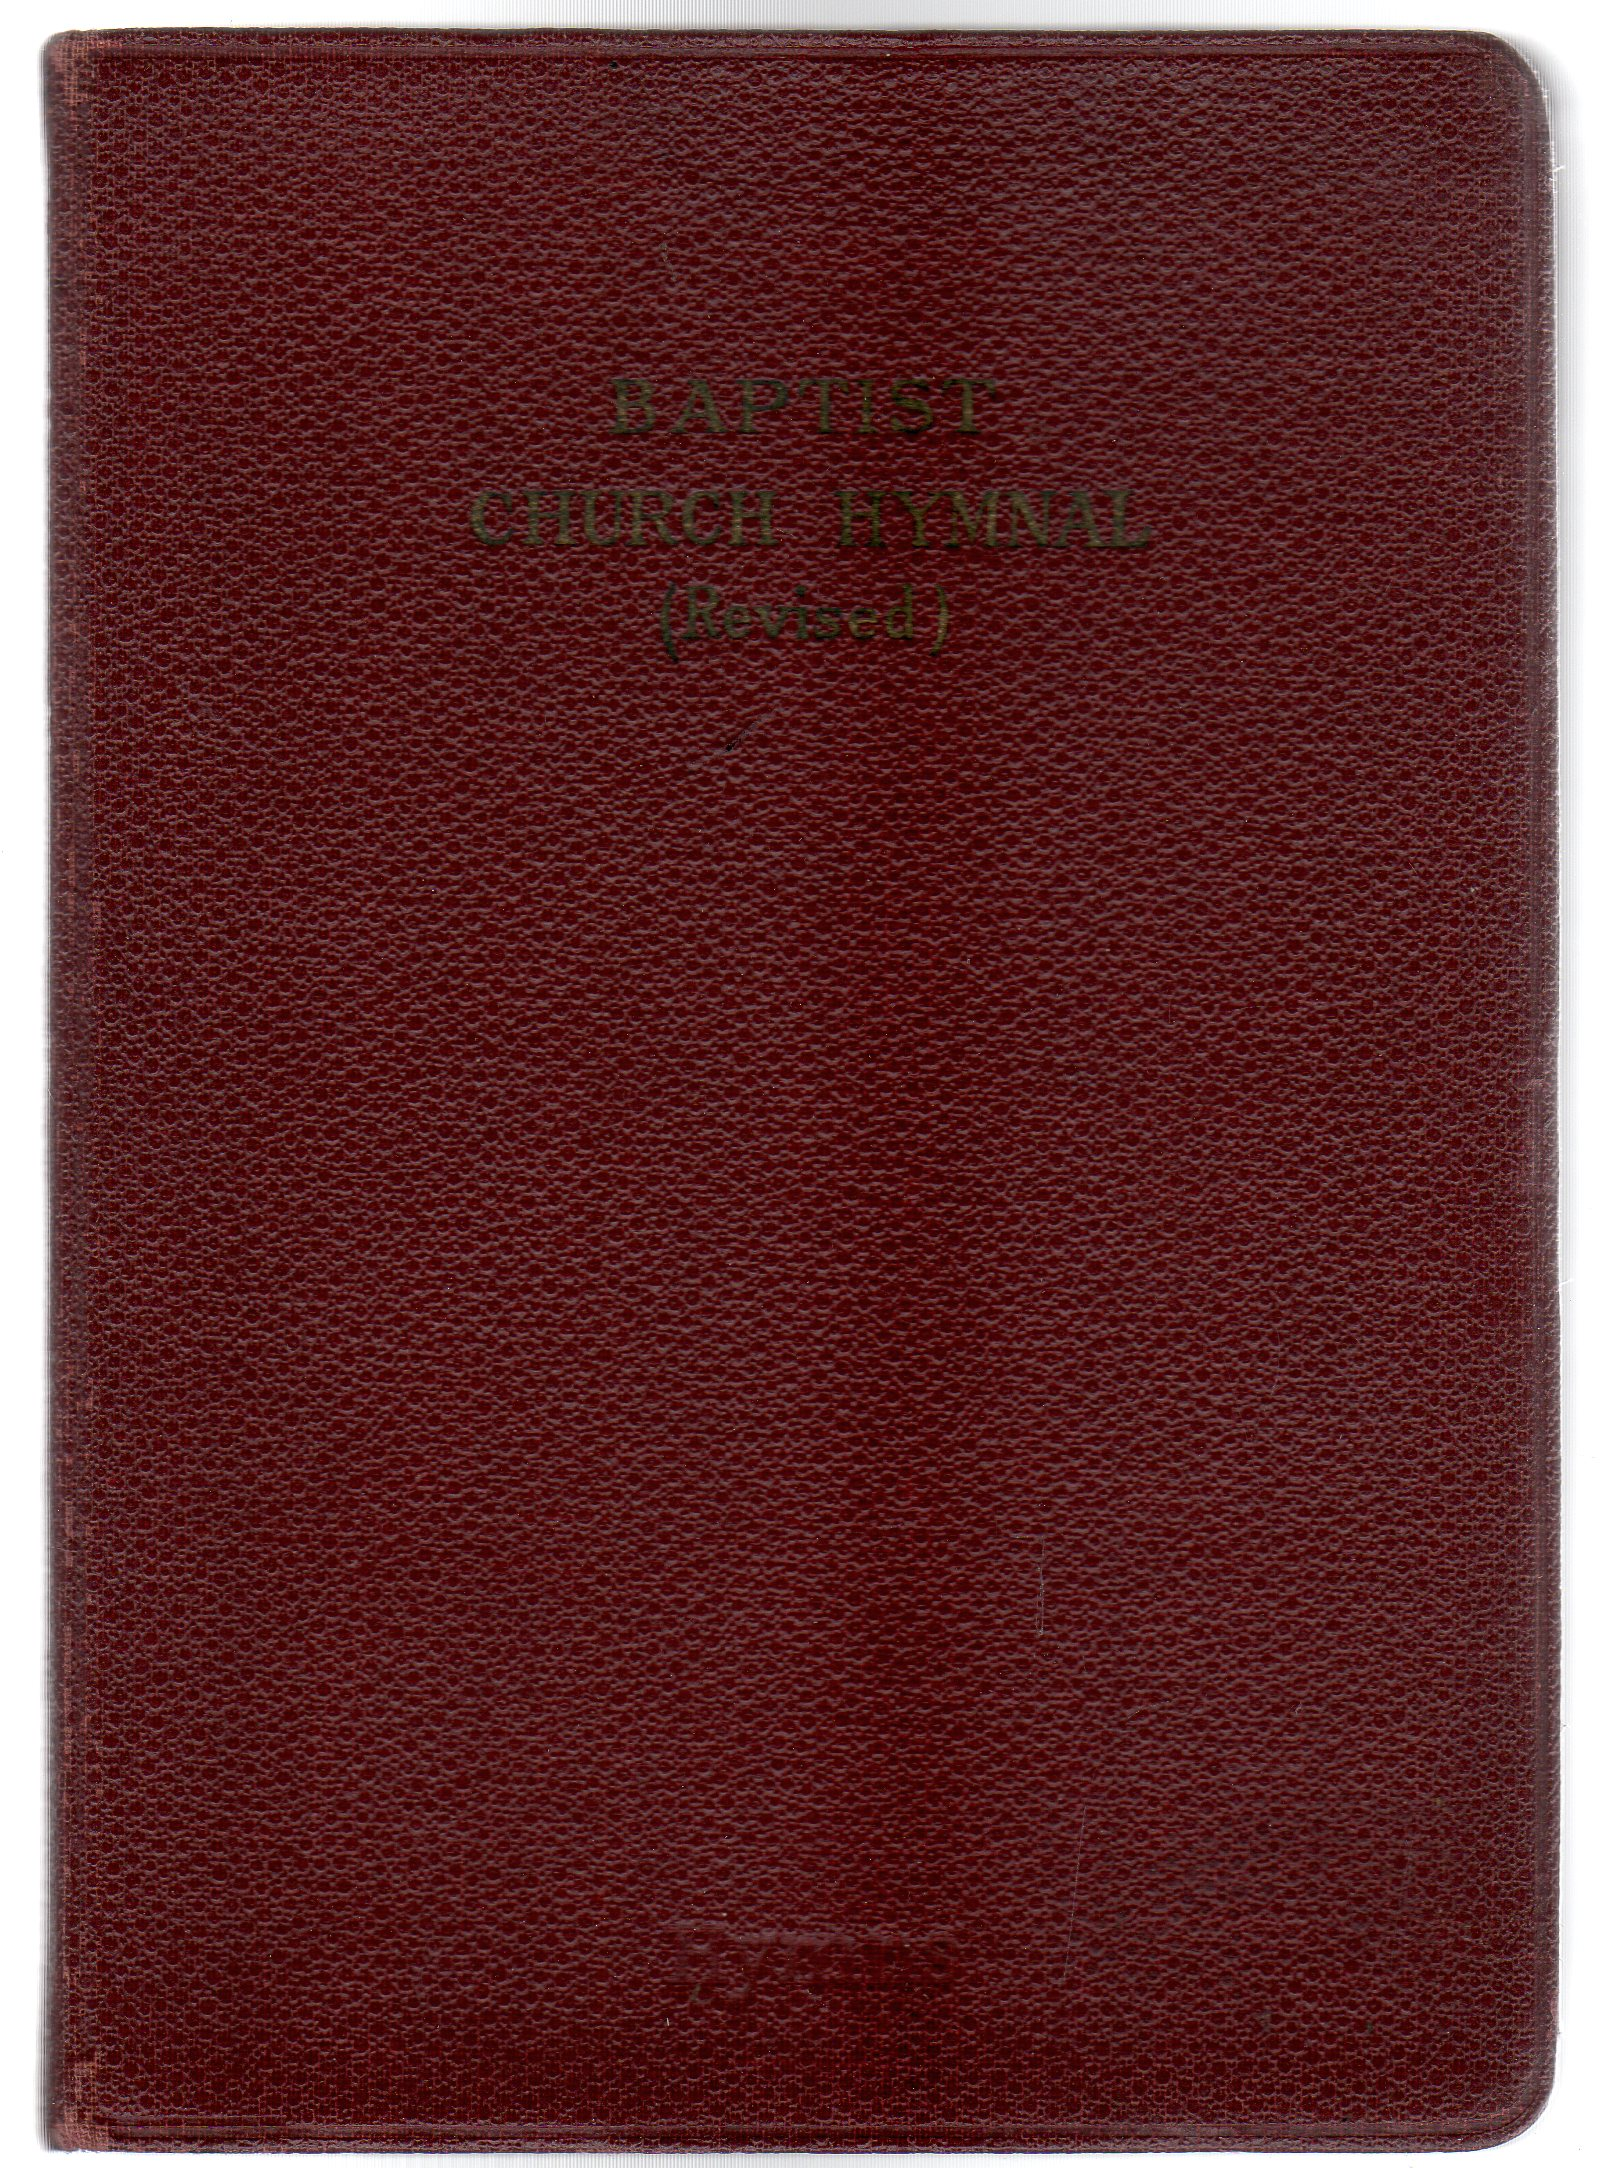 Image for The Baptist Church Hymnal Revised Edition